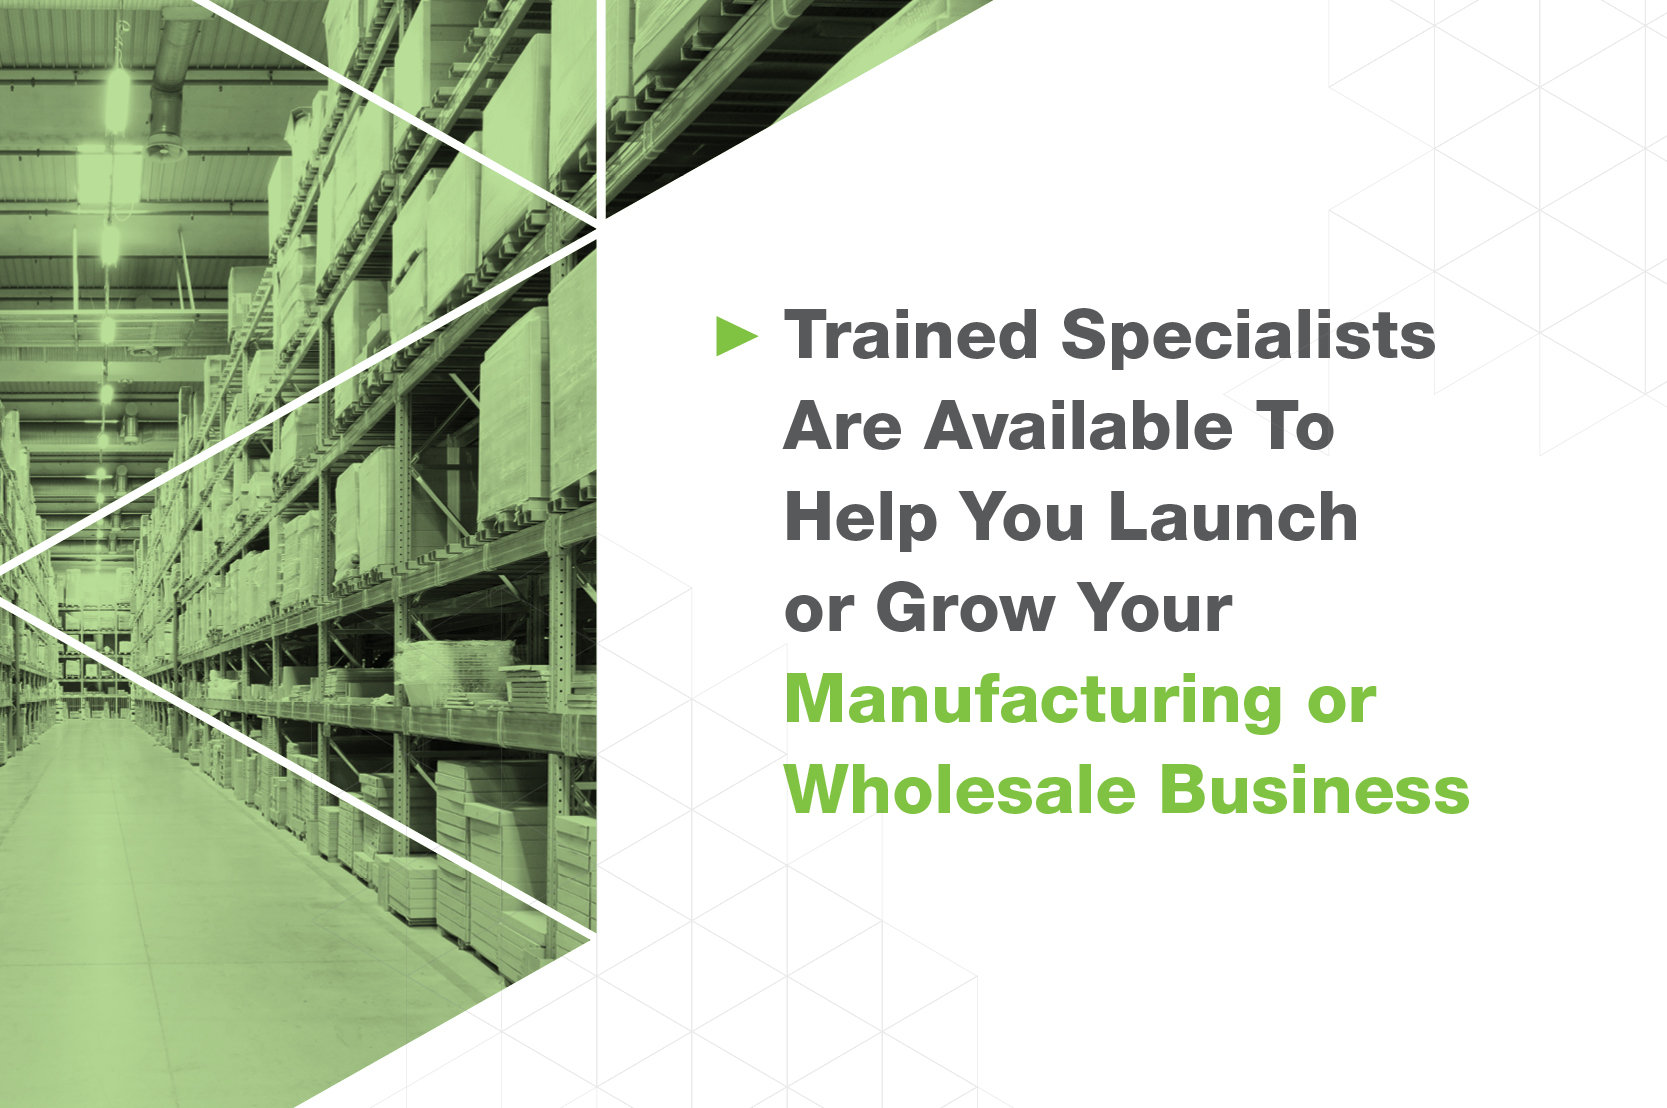 Trained specialists are available to help you launch or grow your industrial business.